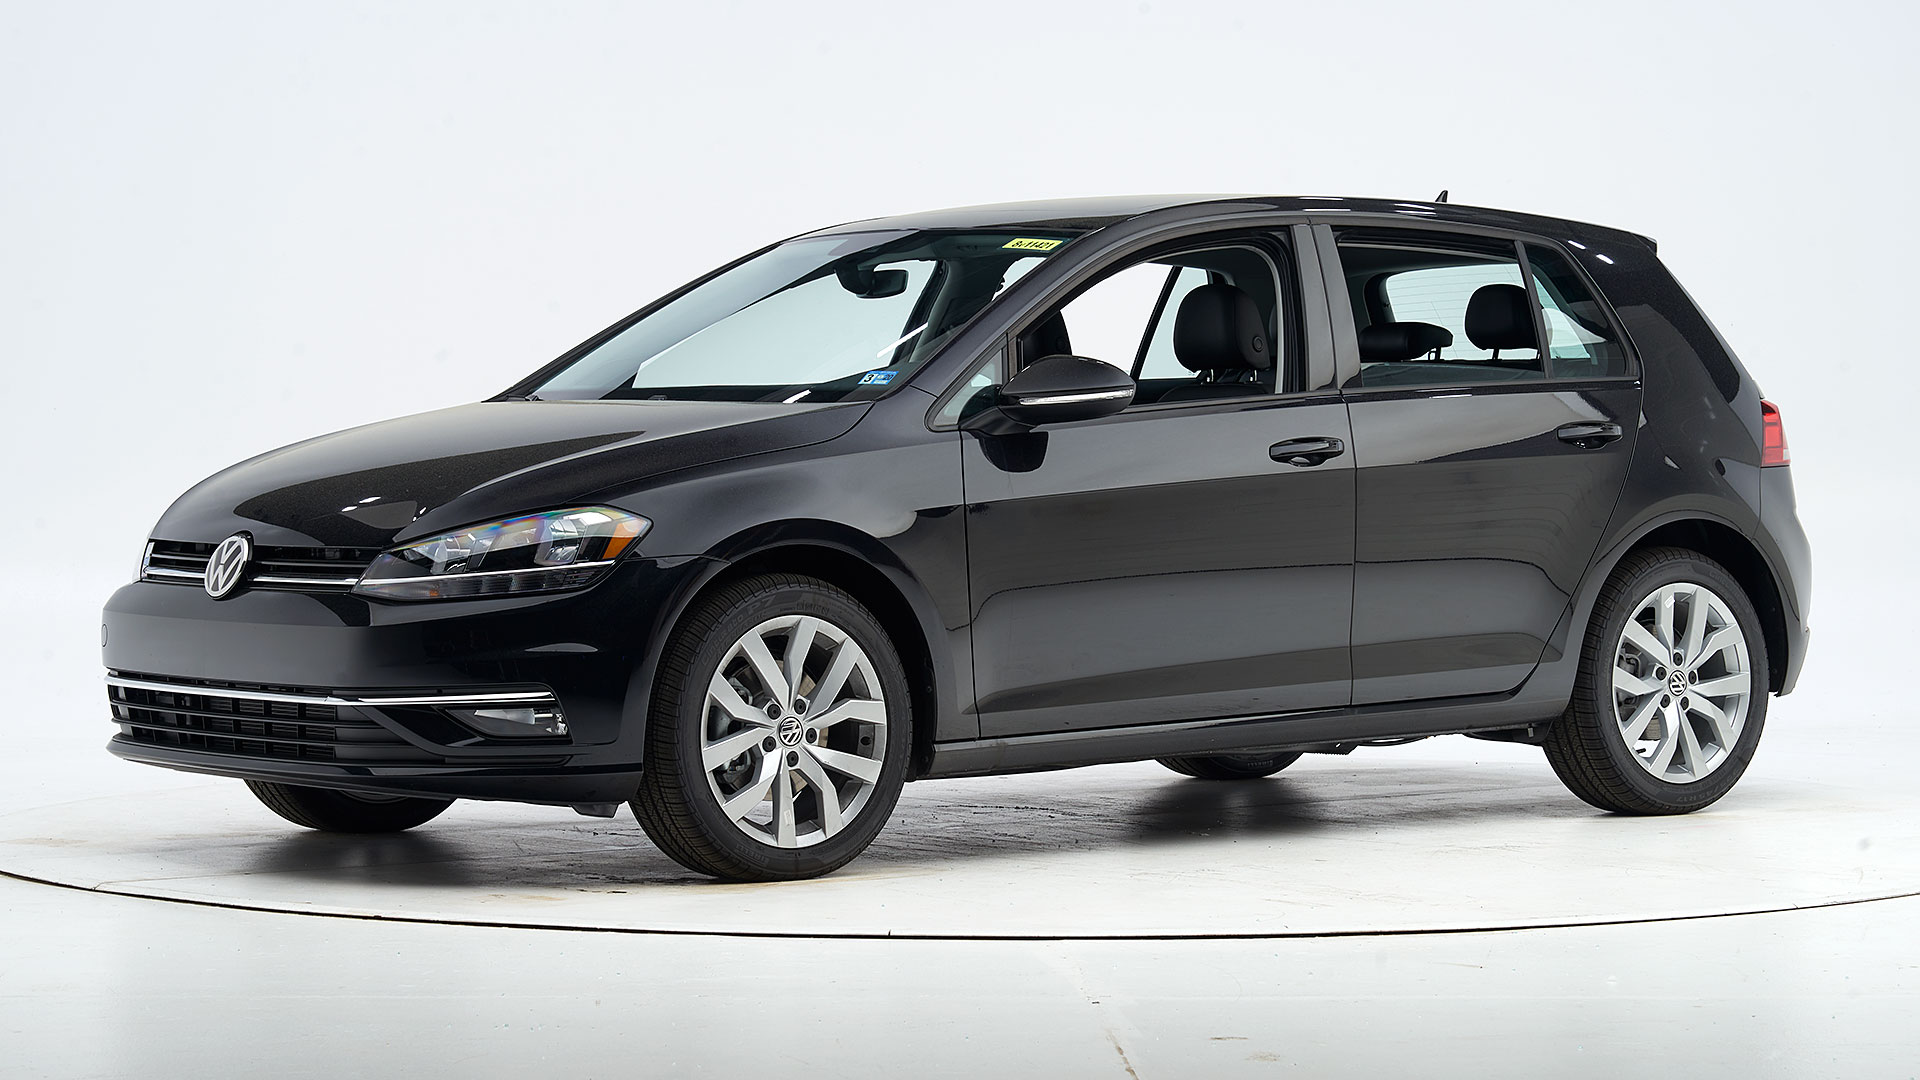 2019 Volkswagen Golf 4-door hatchback